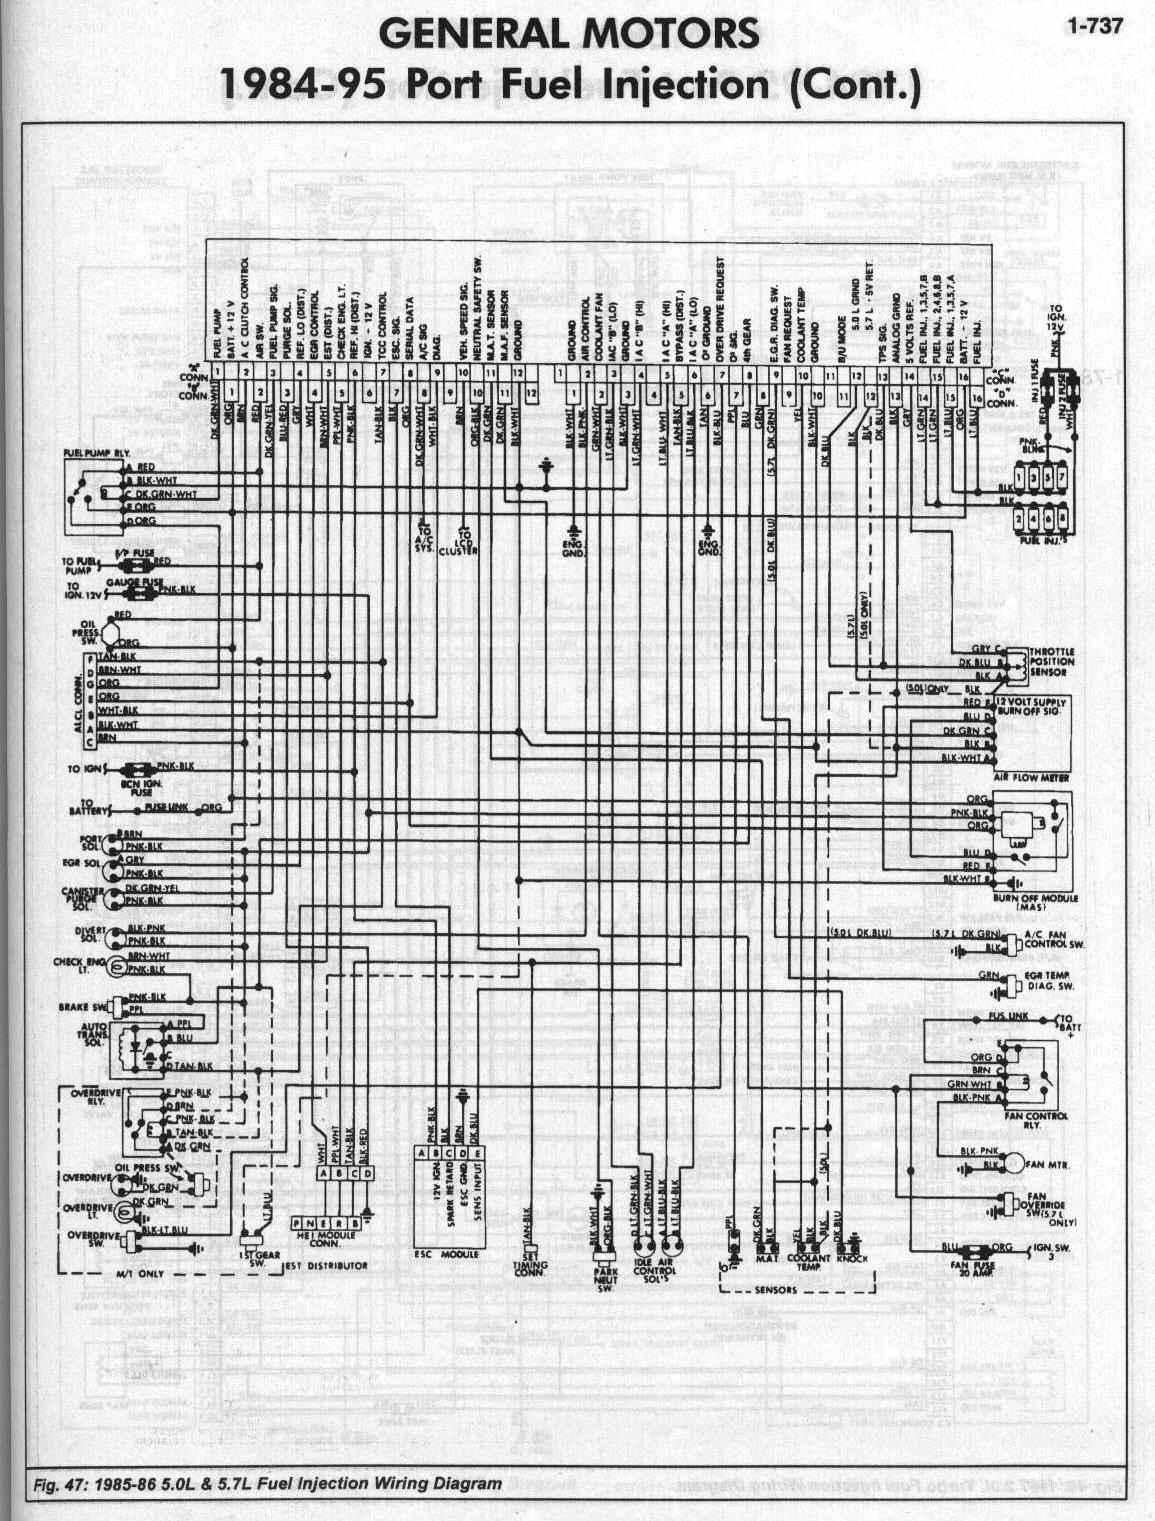 Chevy Ecm Wiring Diagram | Wiring Liry on ls1 engine wiring harness, 97 chevy wiring harness, 2002 chevy cavalier engine wiring harness,